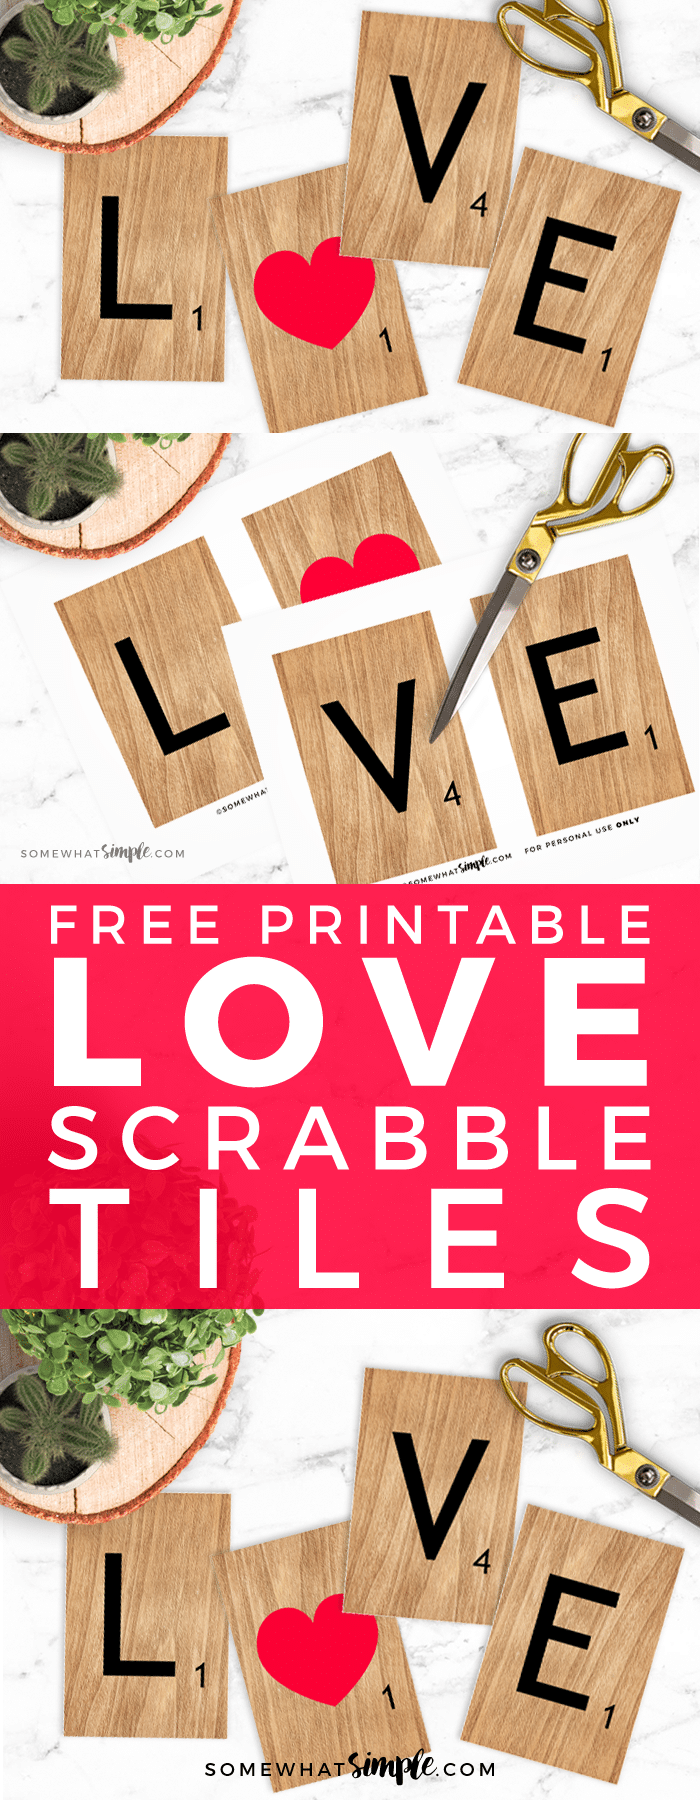 Free Printable LOVE Scrabble Tiles! Looking for some Free Valentine Wall Art Printables? These L-O-V-E printable Scrabble Tiles are the perfect touch to bring a little love into your home!